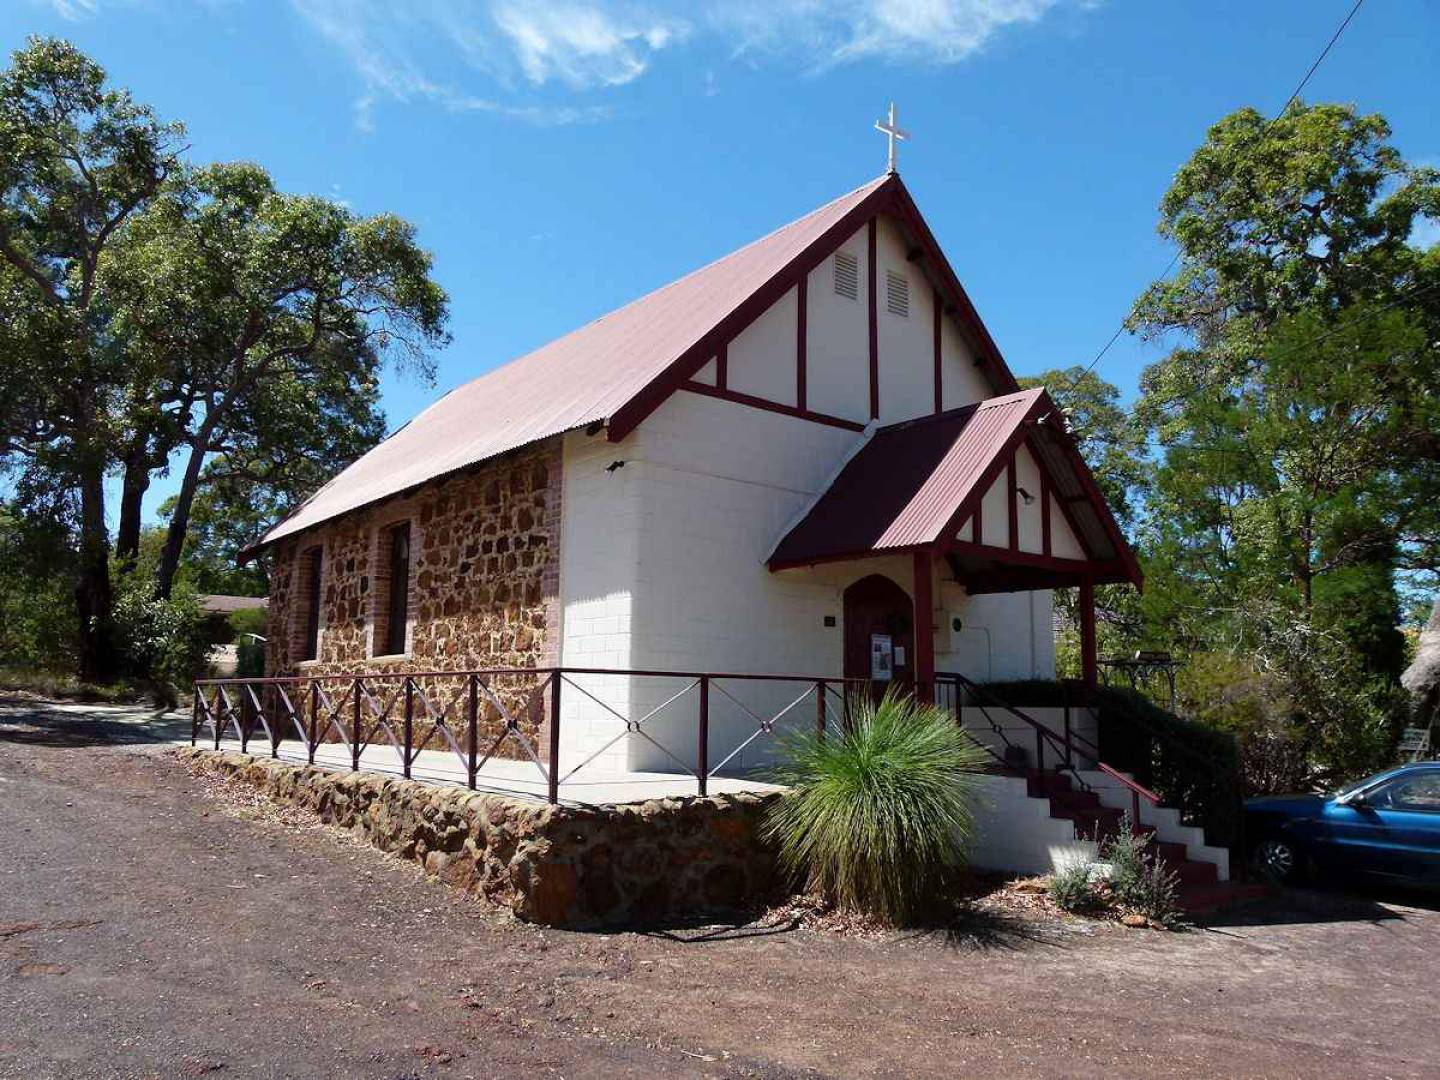 St Swithun's Anglican Church